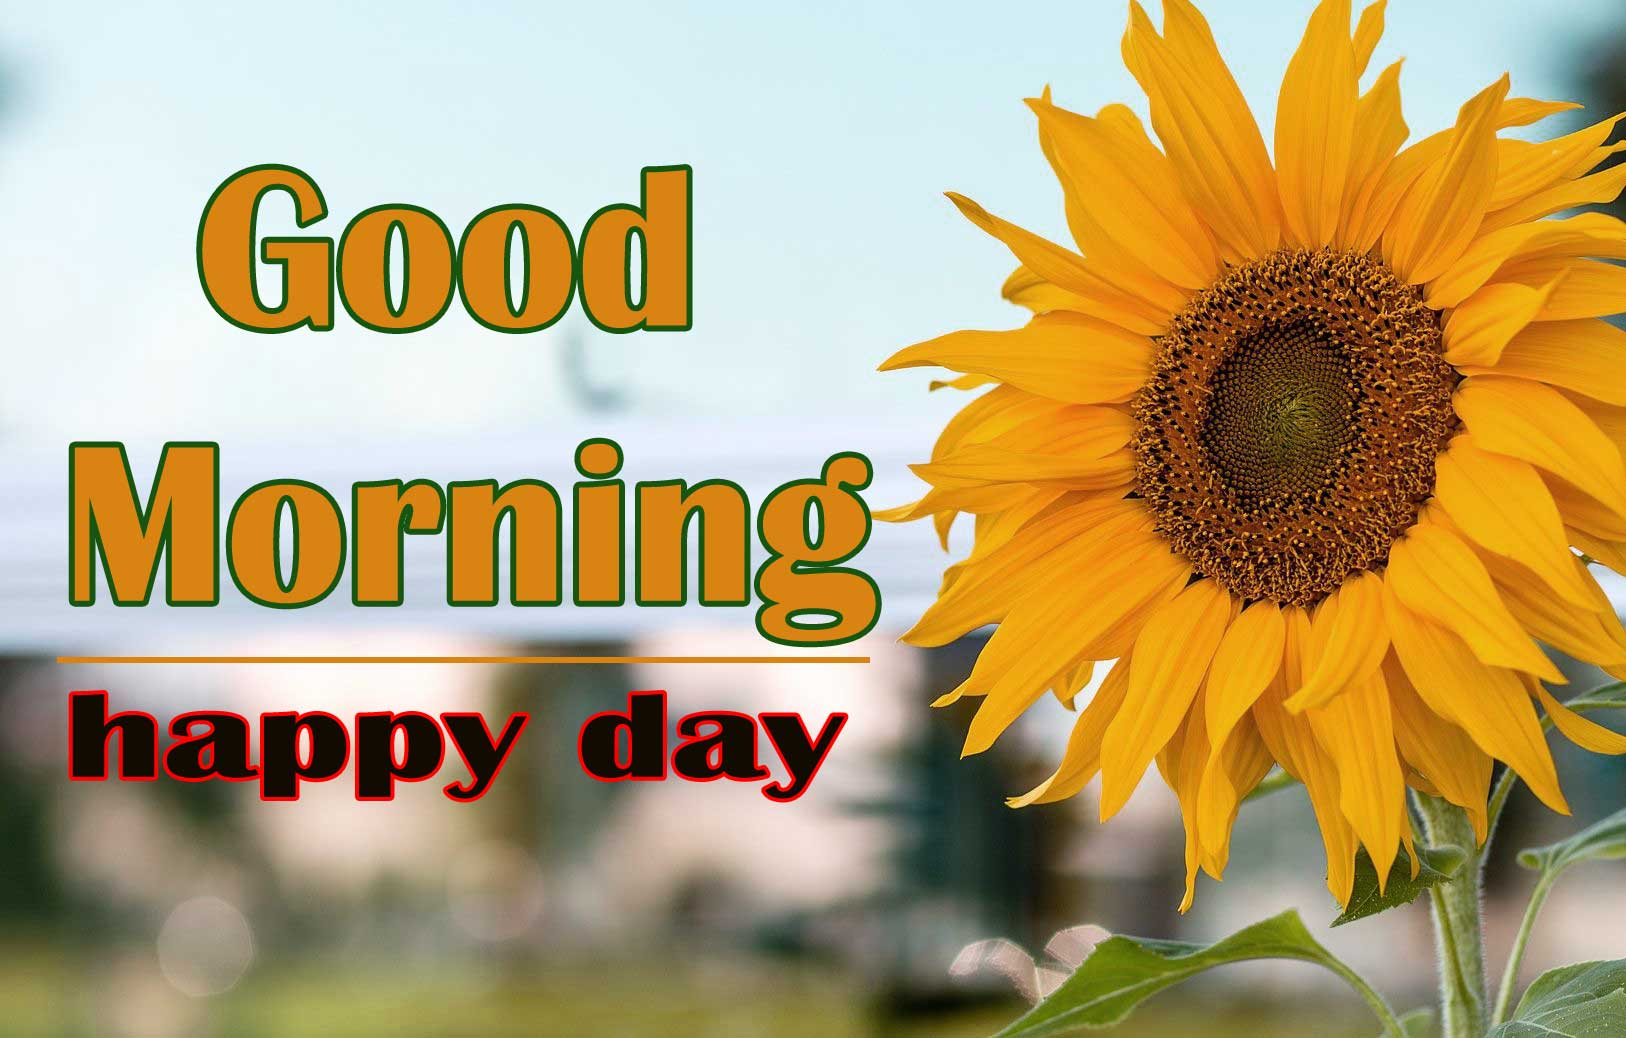 Good Morning Sunflower Images Wallpaper New Download